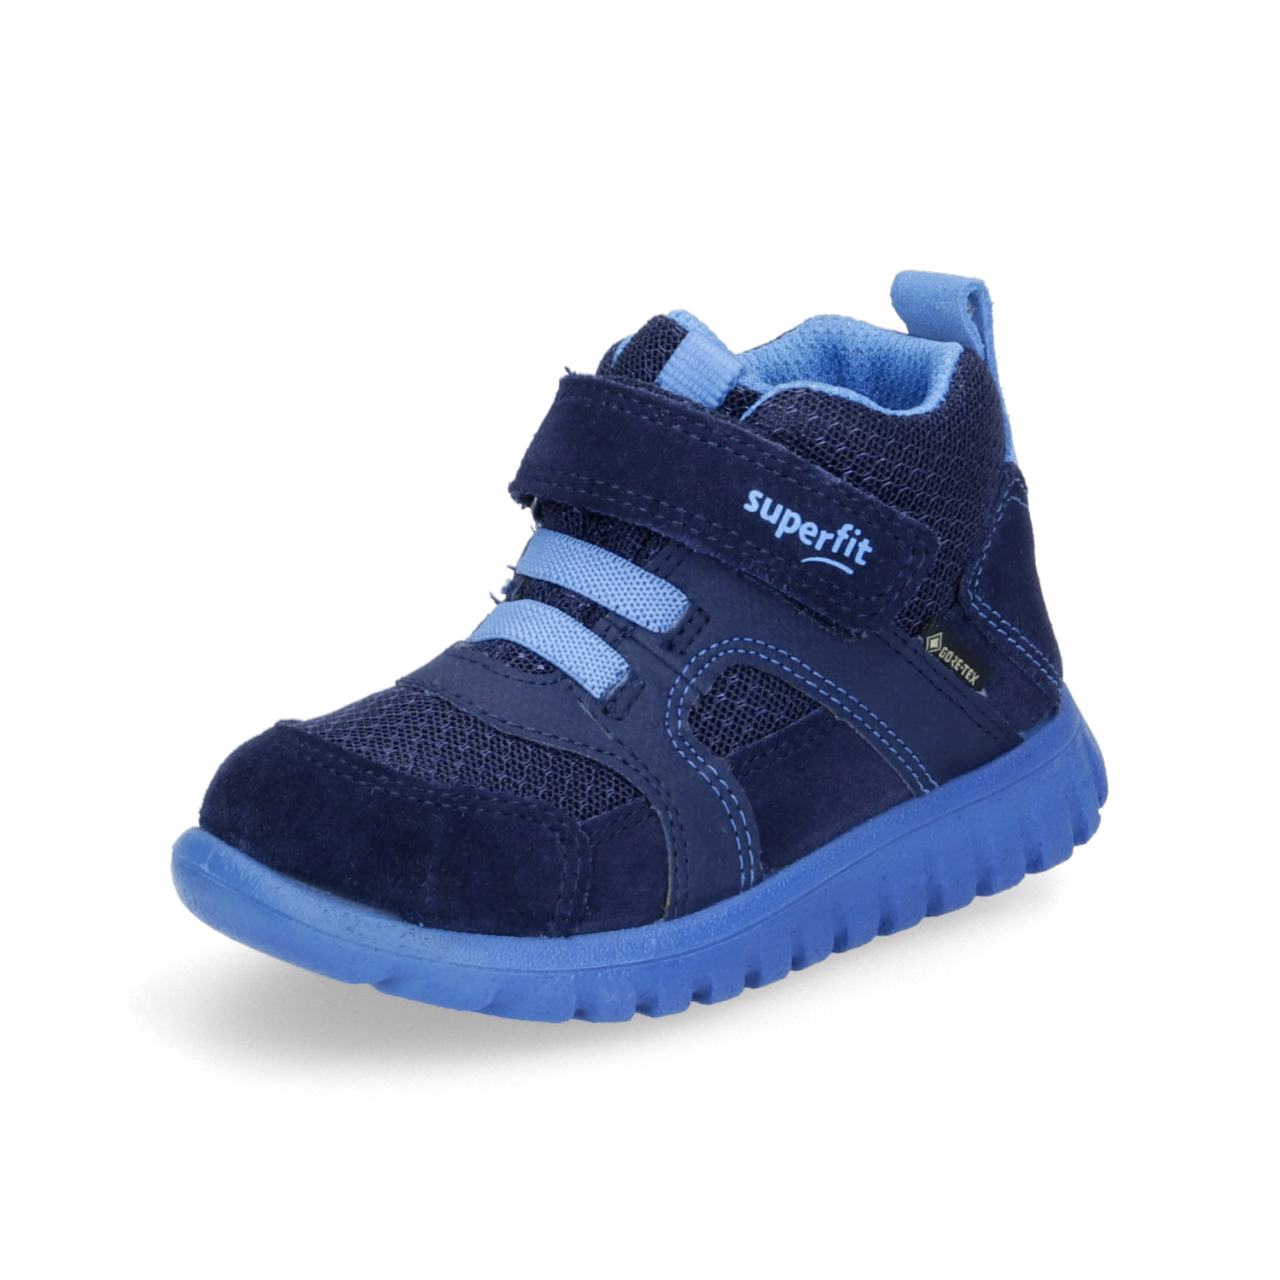 Superfit Kinder Stiefel